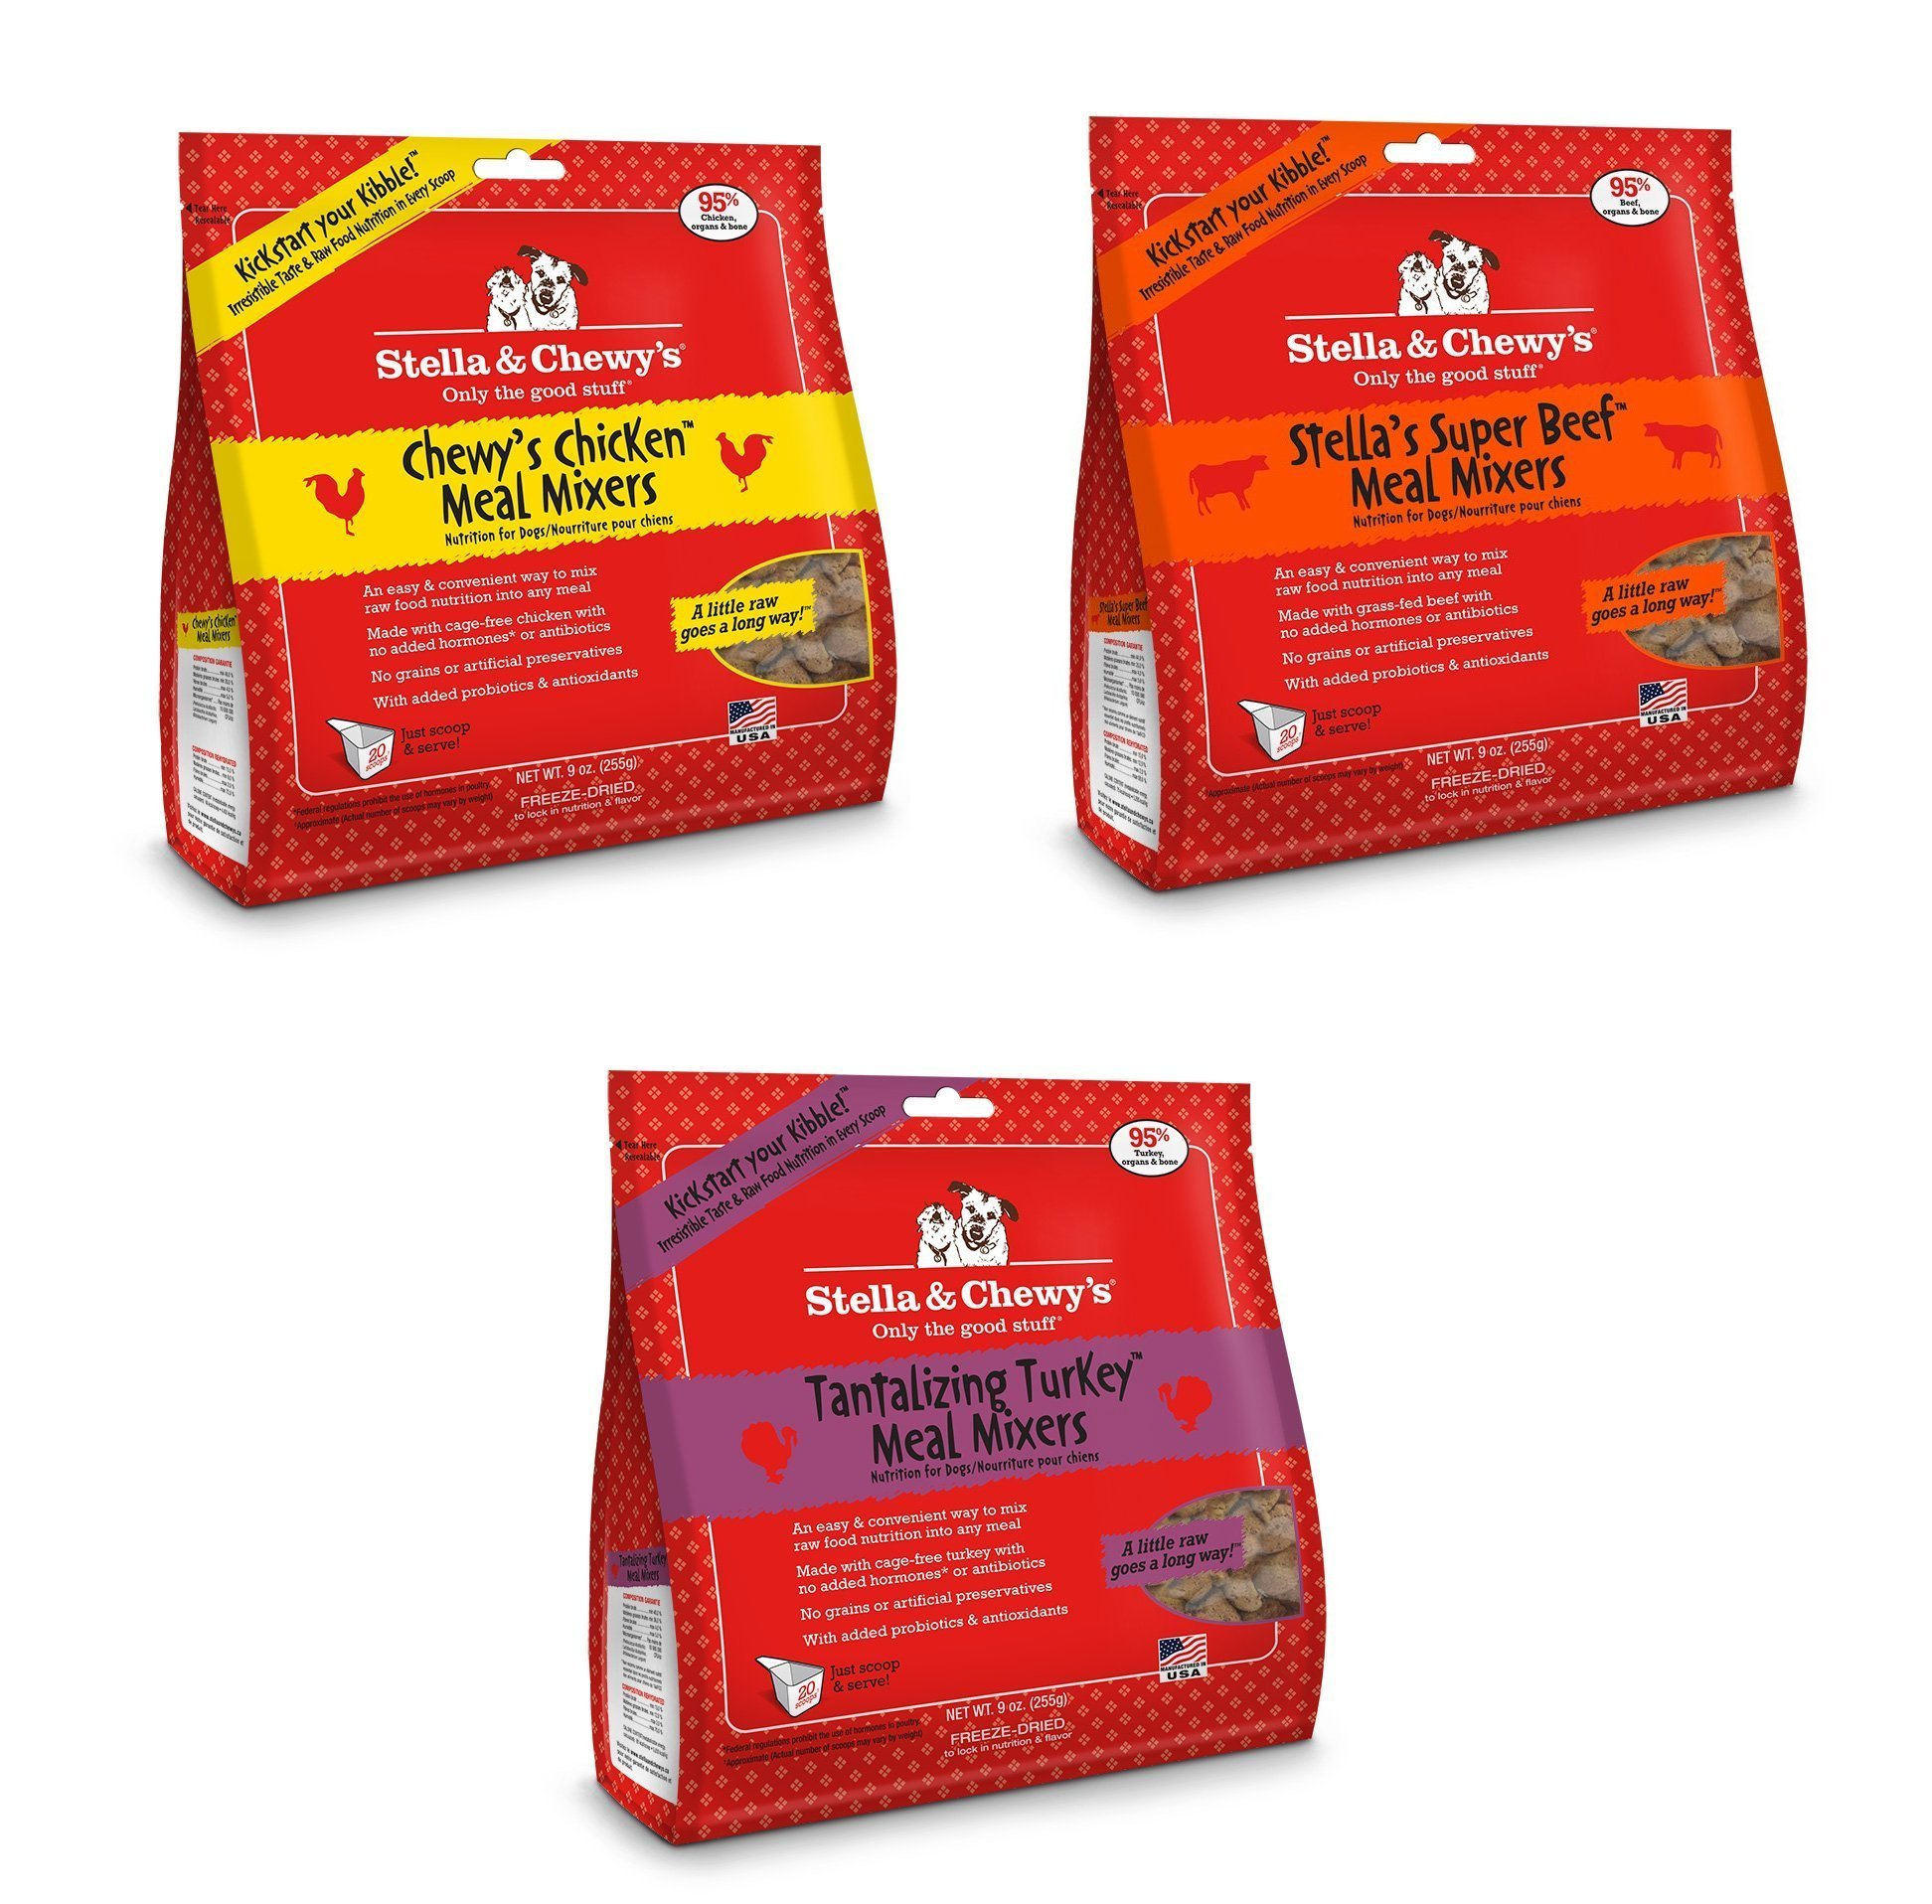 Stella & Chewy's Freeze Dried Meal Mixers for Dogs, 18oz Variety 3 Pack. 1 of each flavor (Beef, Chicken, Turkey)